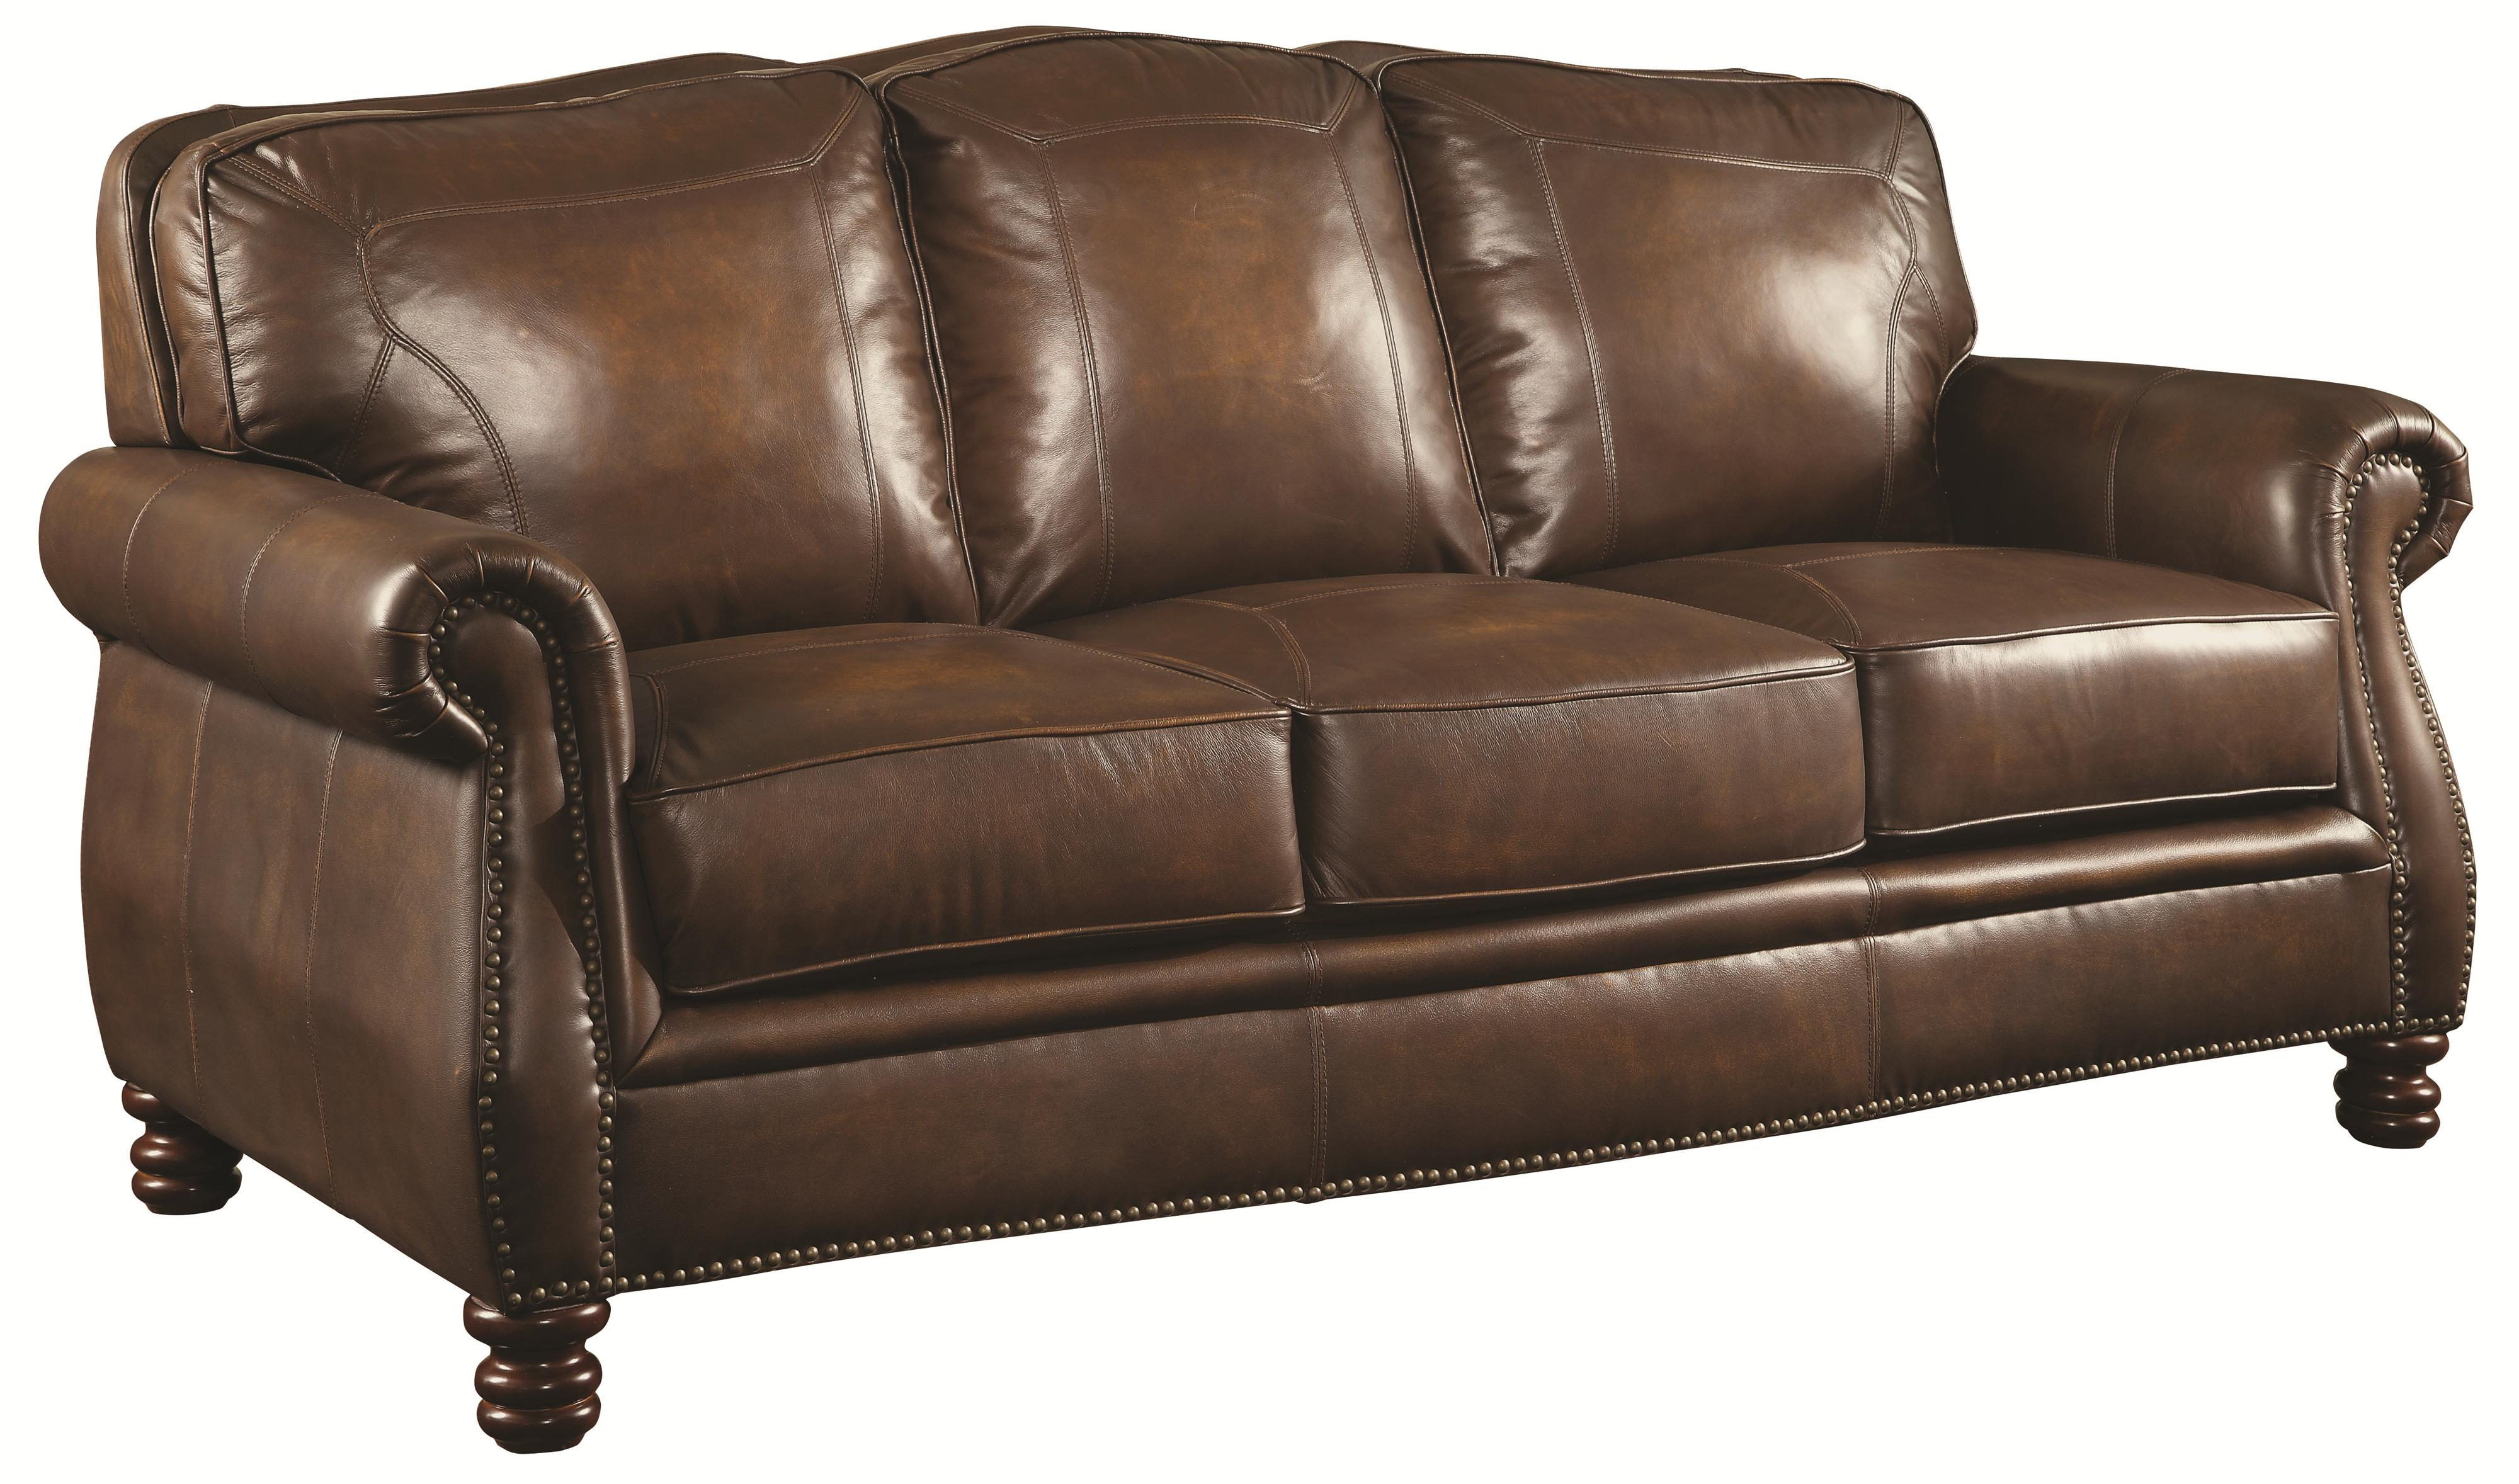 Coaster Montbrook Sofa - Item Number: 503981-Hand Rubbed Brown